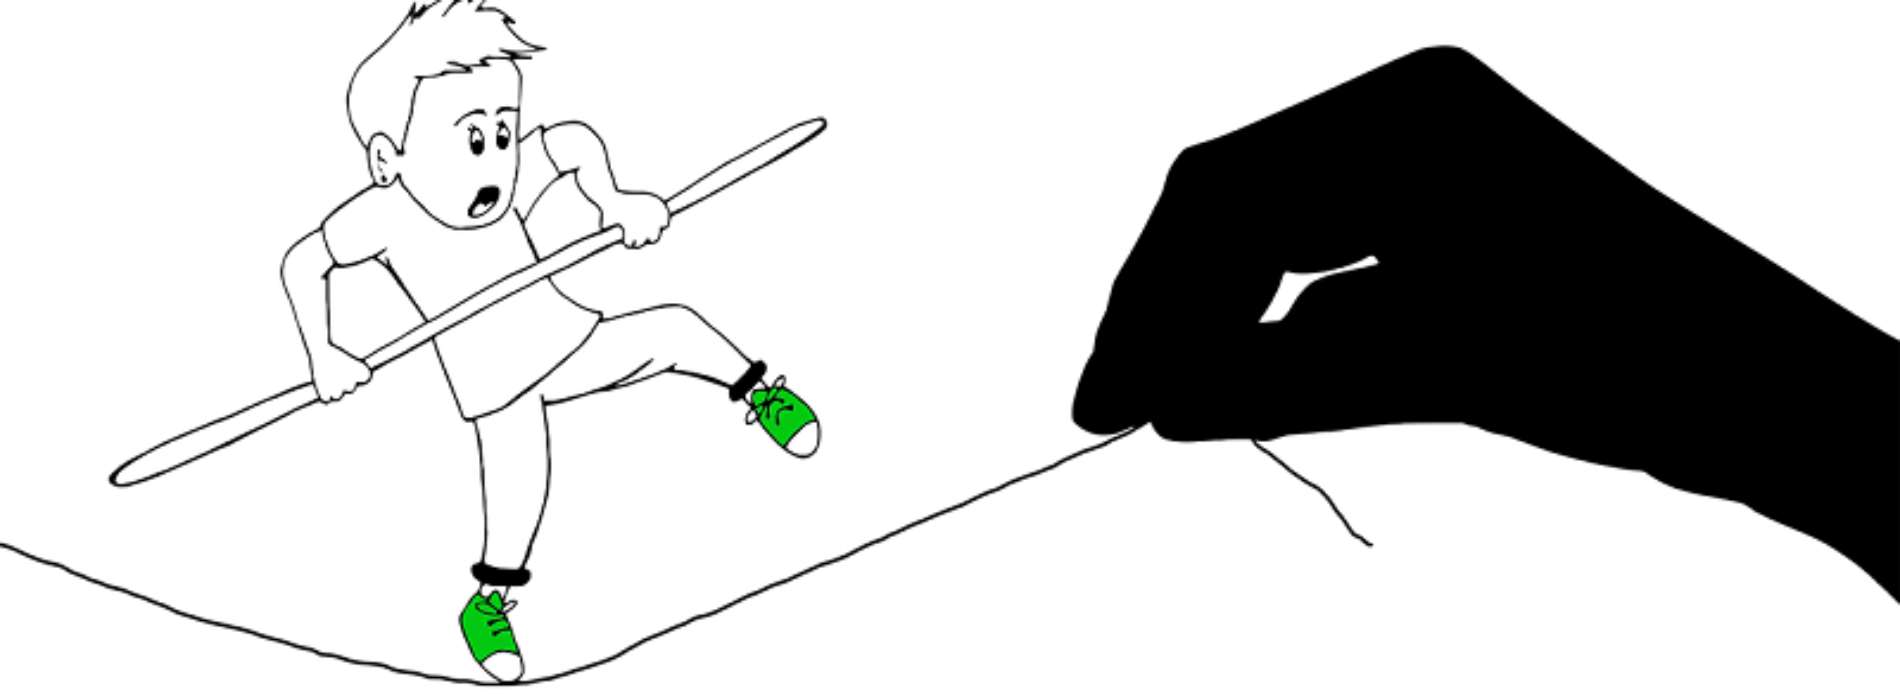 Finding truly accessible products is like walking a tightrope